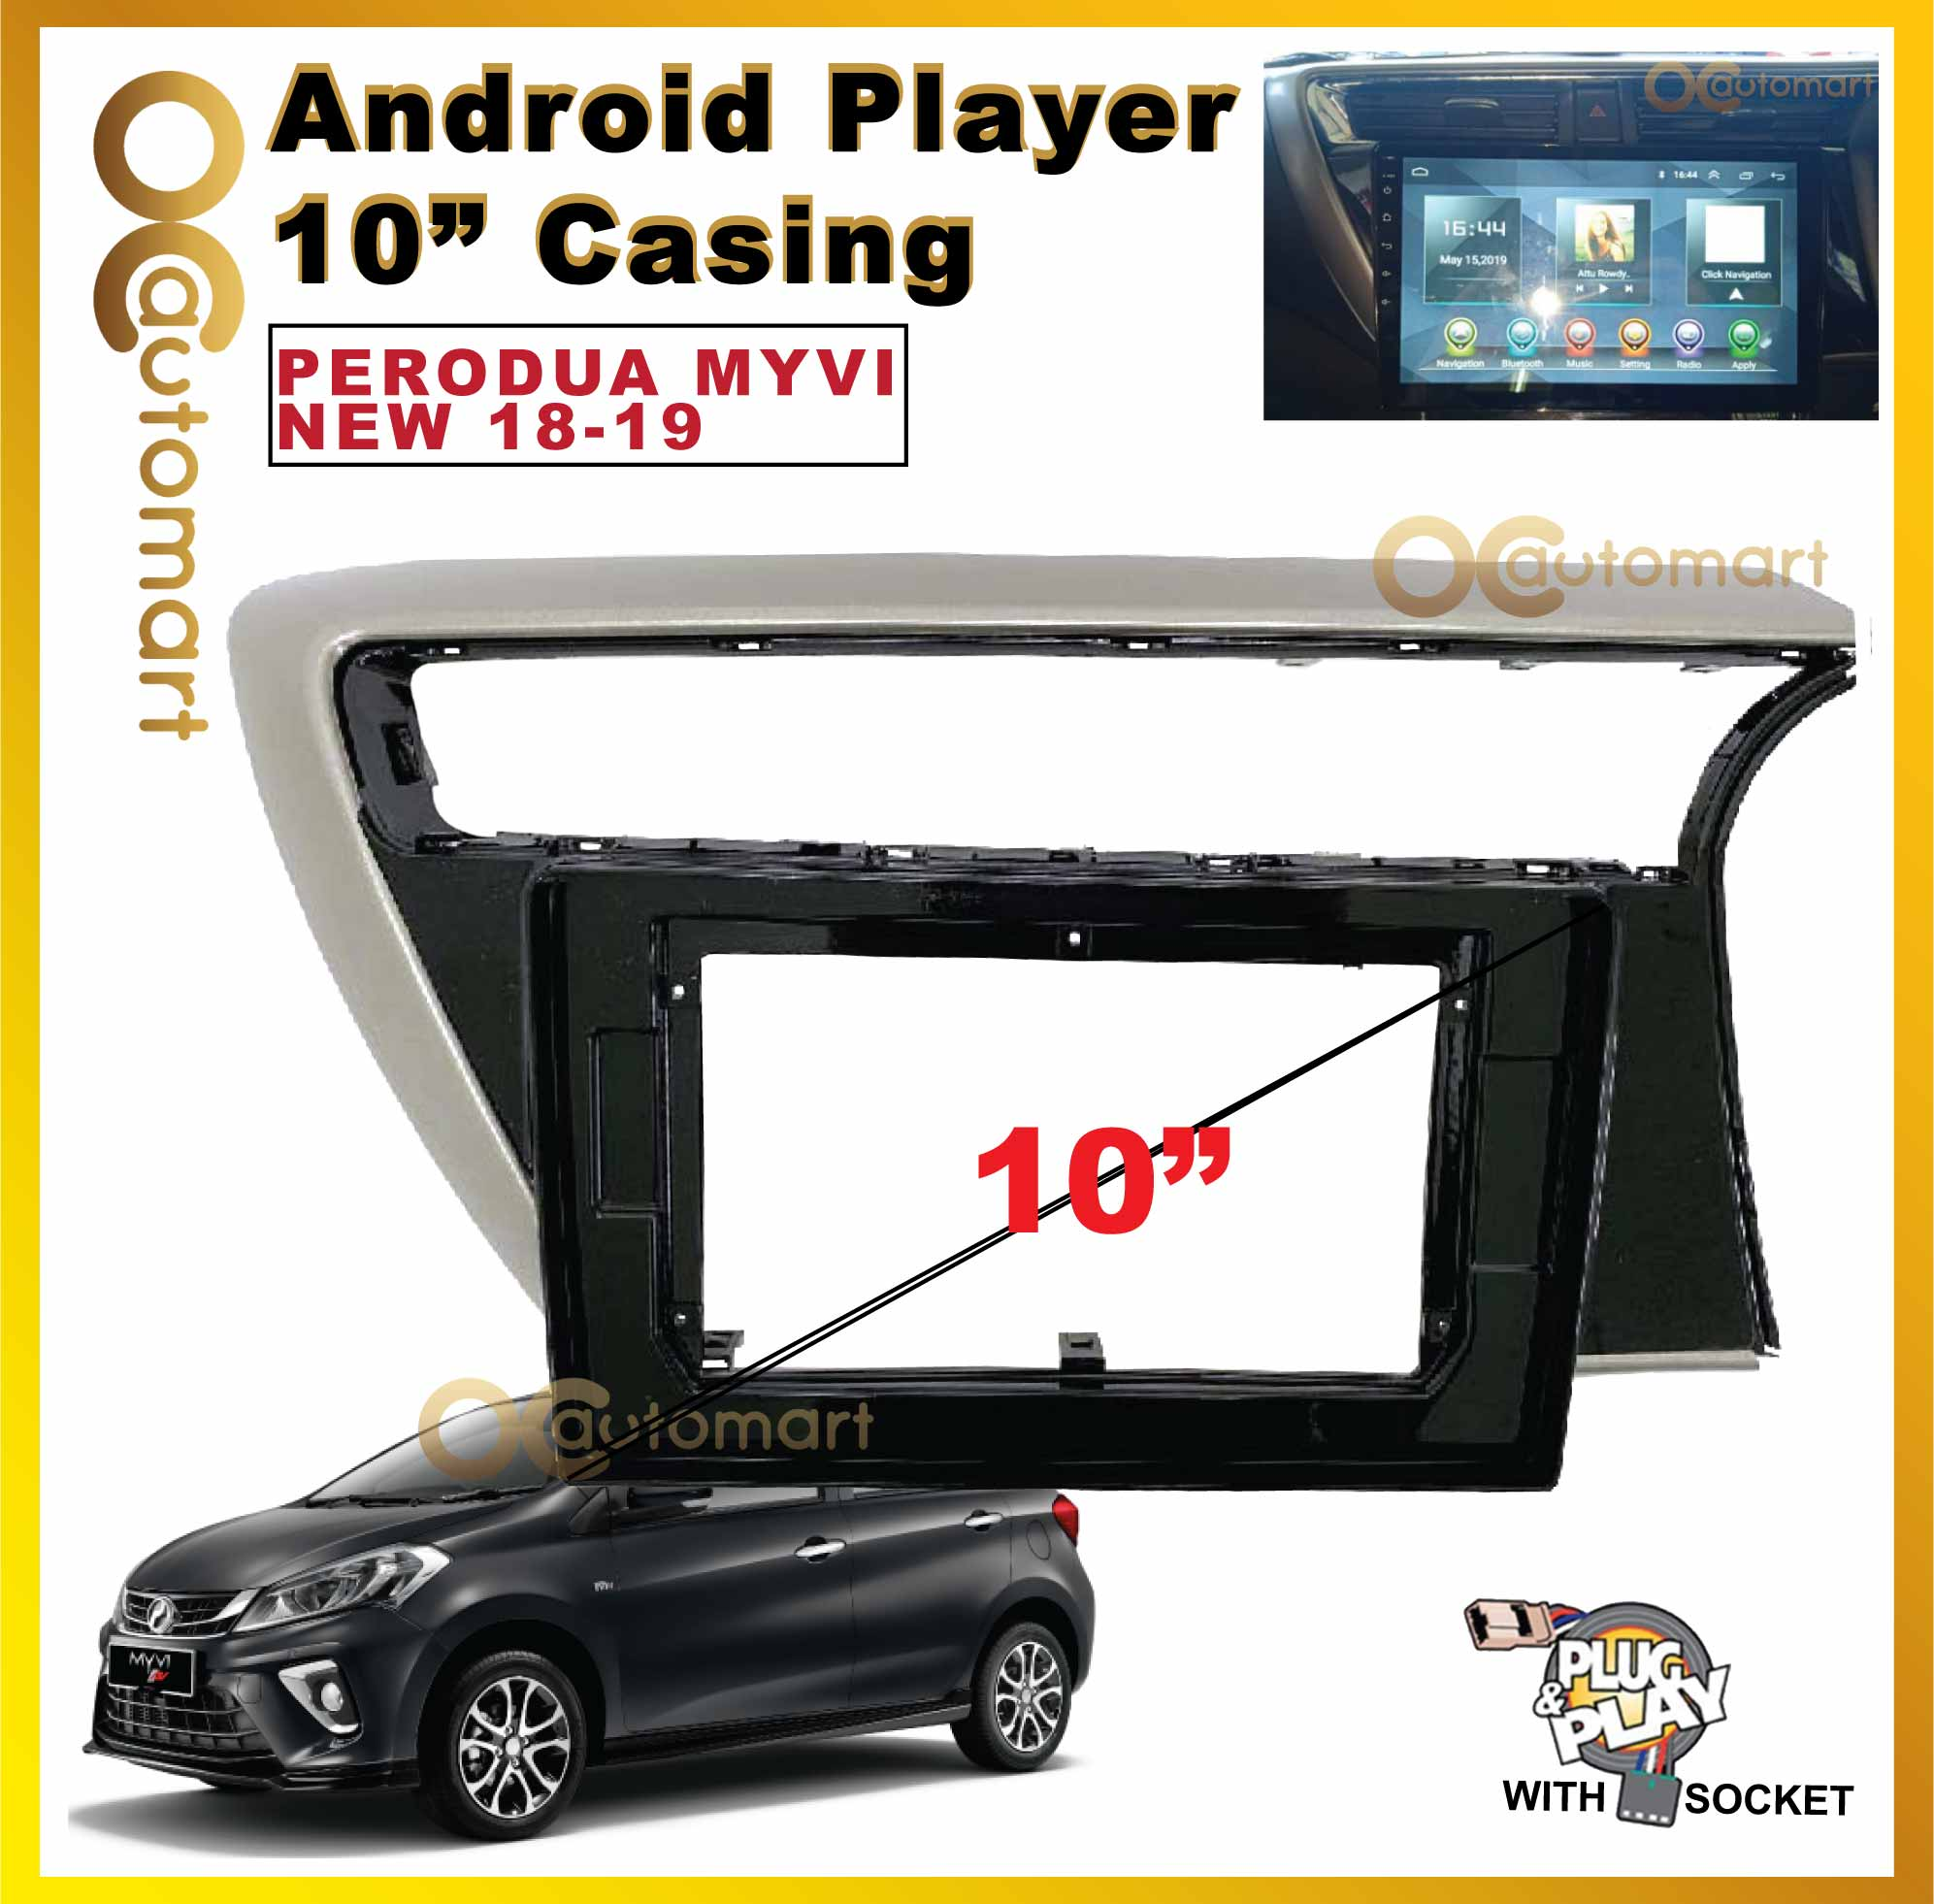 Perodua Myvi New 2018-2019 10INCH ANDROID PLAYER CASING ONLY READY STOCK